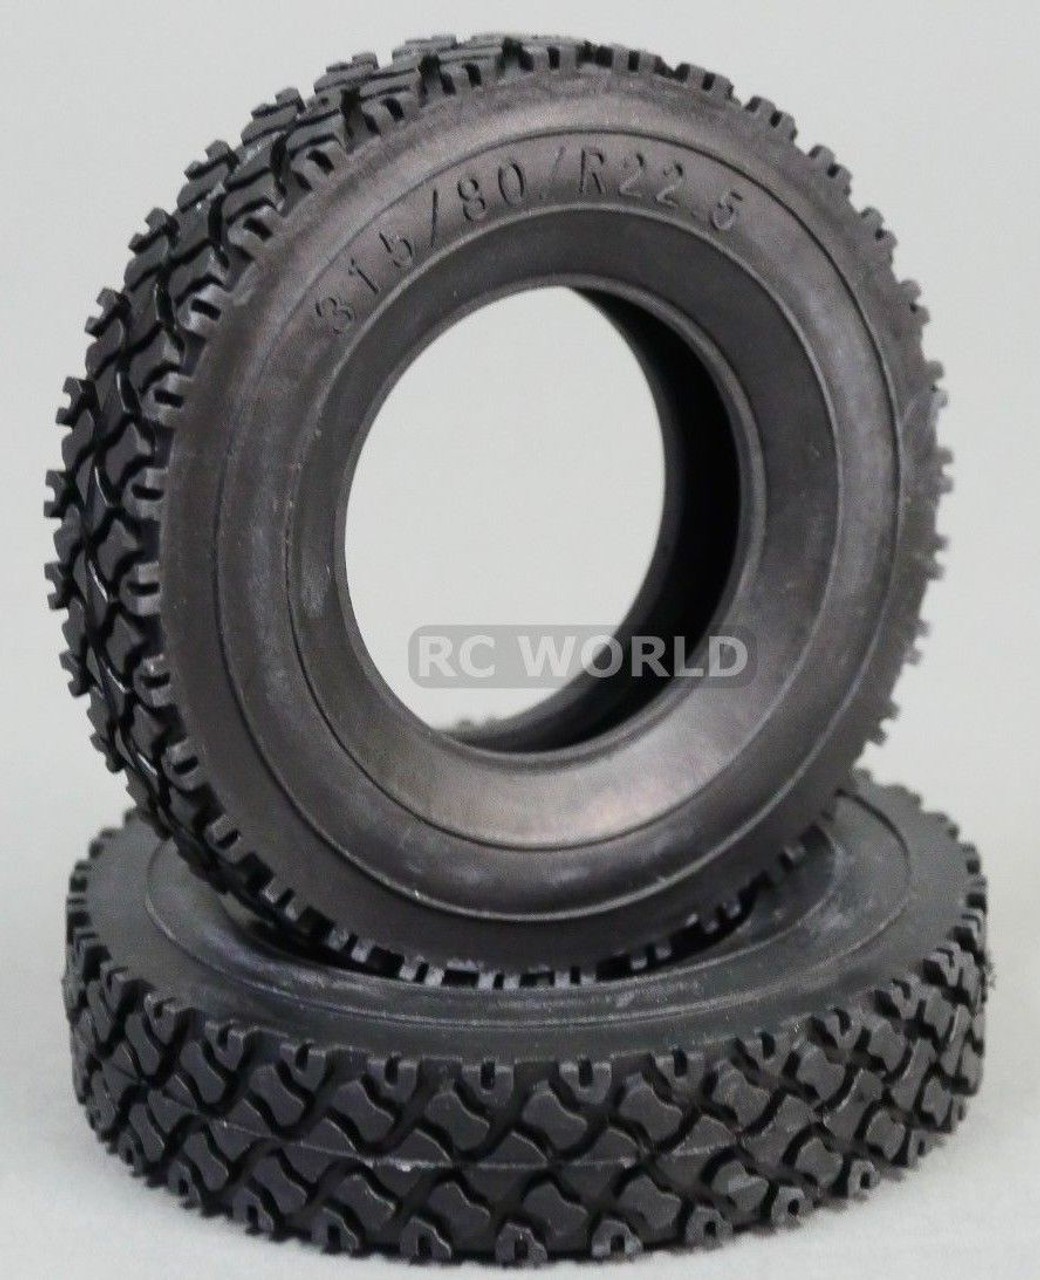 Semi Truck Tires Near Me >> Rc 1 14 Scale Truck Tires 92mm For Tamiya Semi Trucks 2pcs Rc World